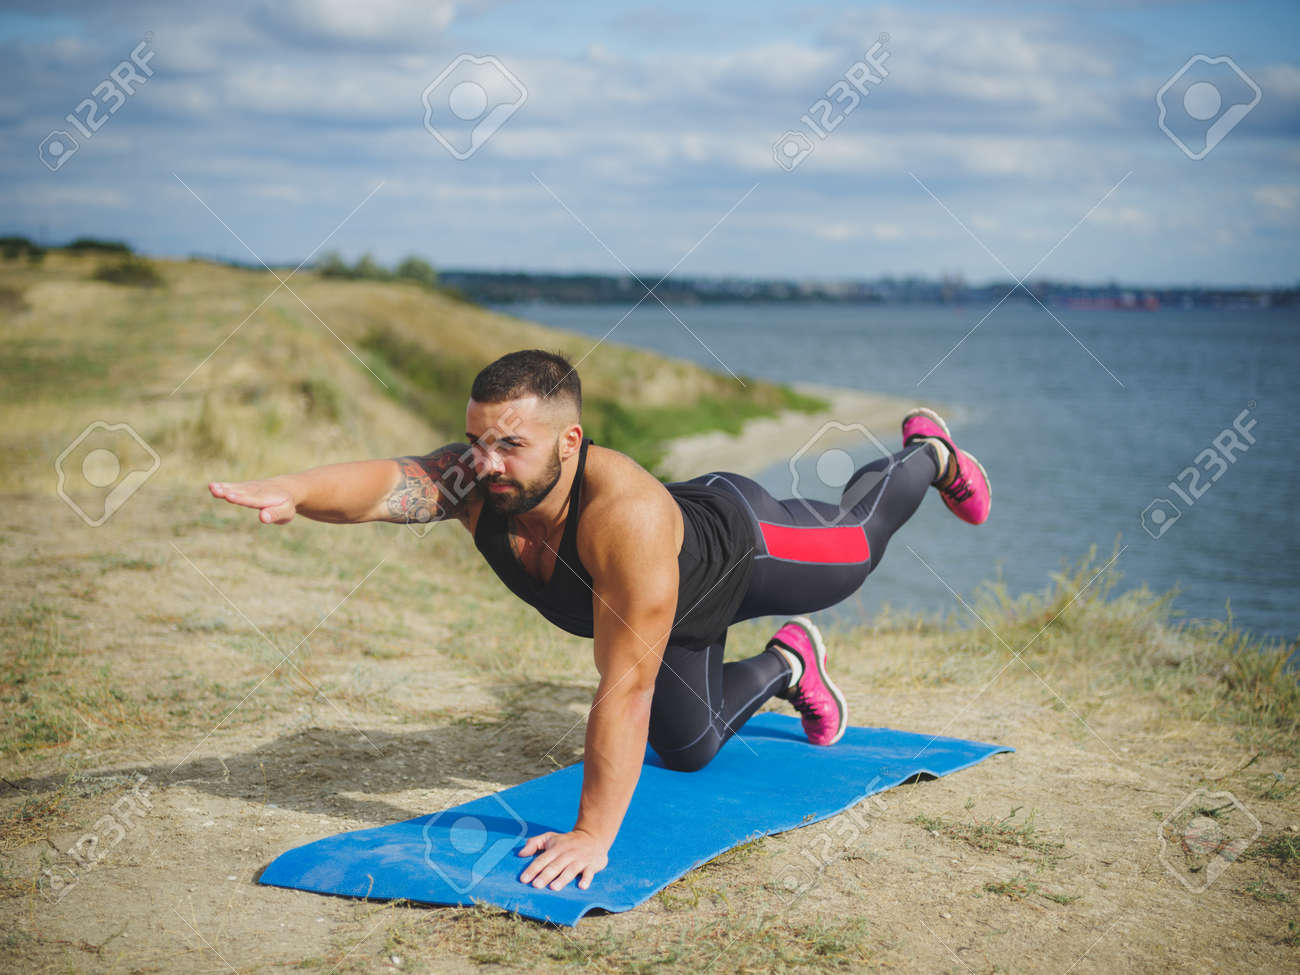 Athletic Strong Man Practicing Difficult Yoga Pose Outdoors Young Male